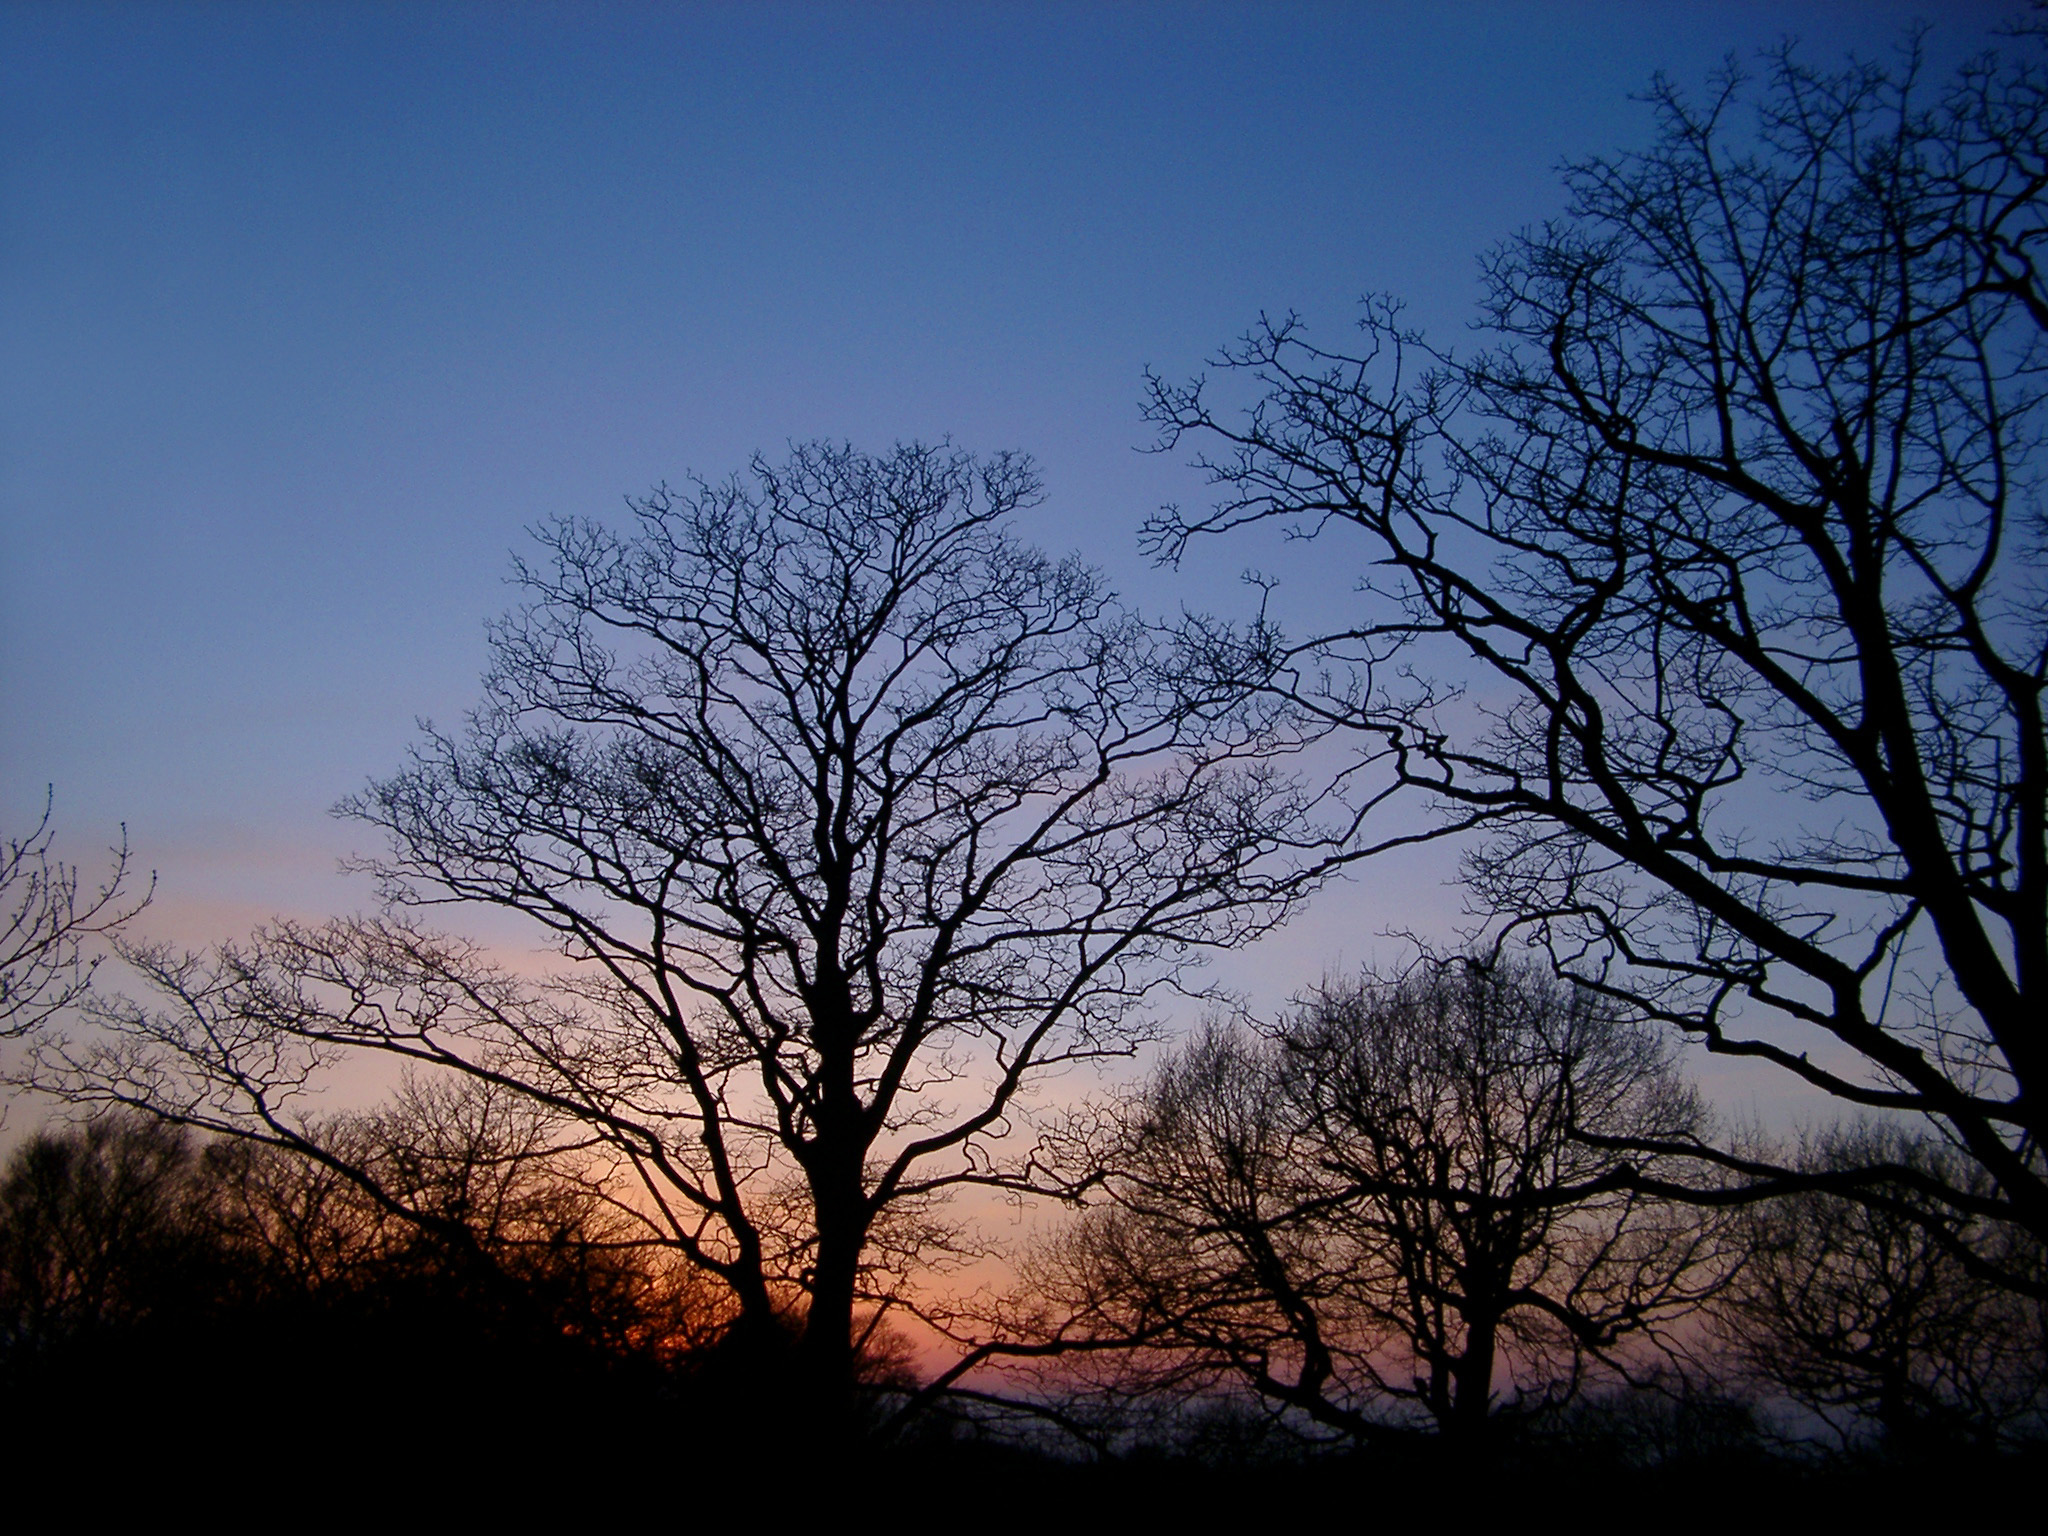 Free Stock photo of Silhouettes of bare deciduous trees at